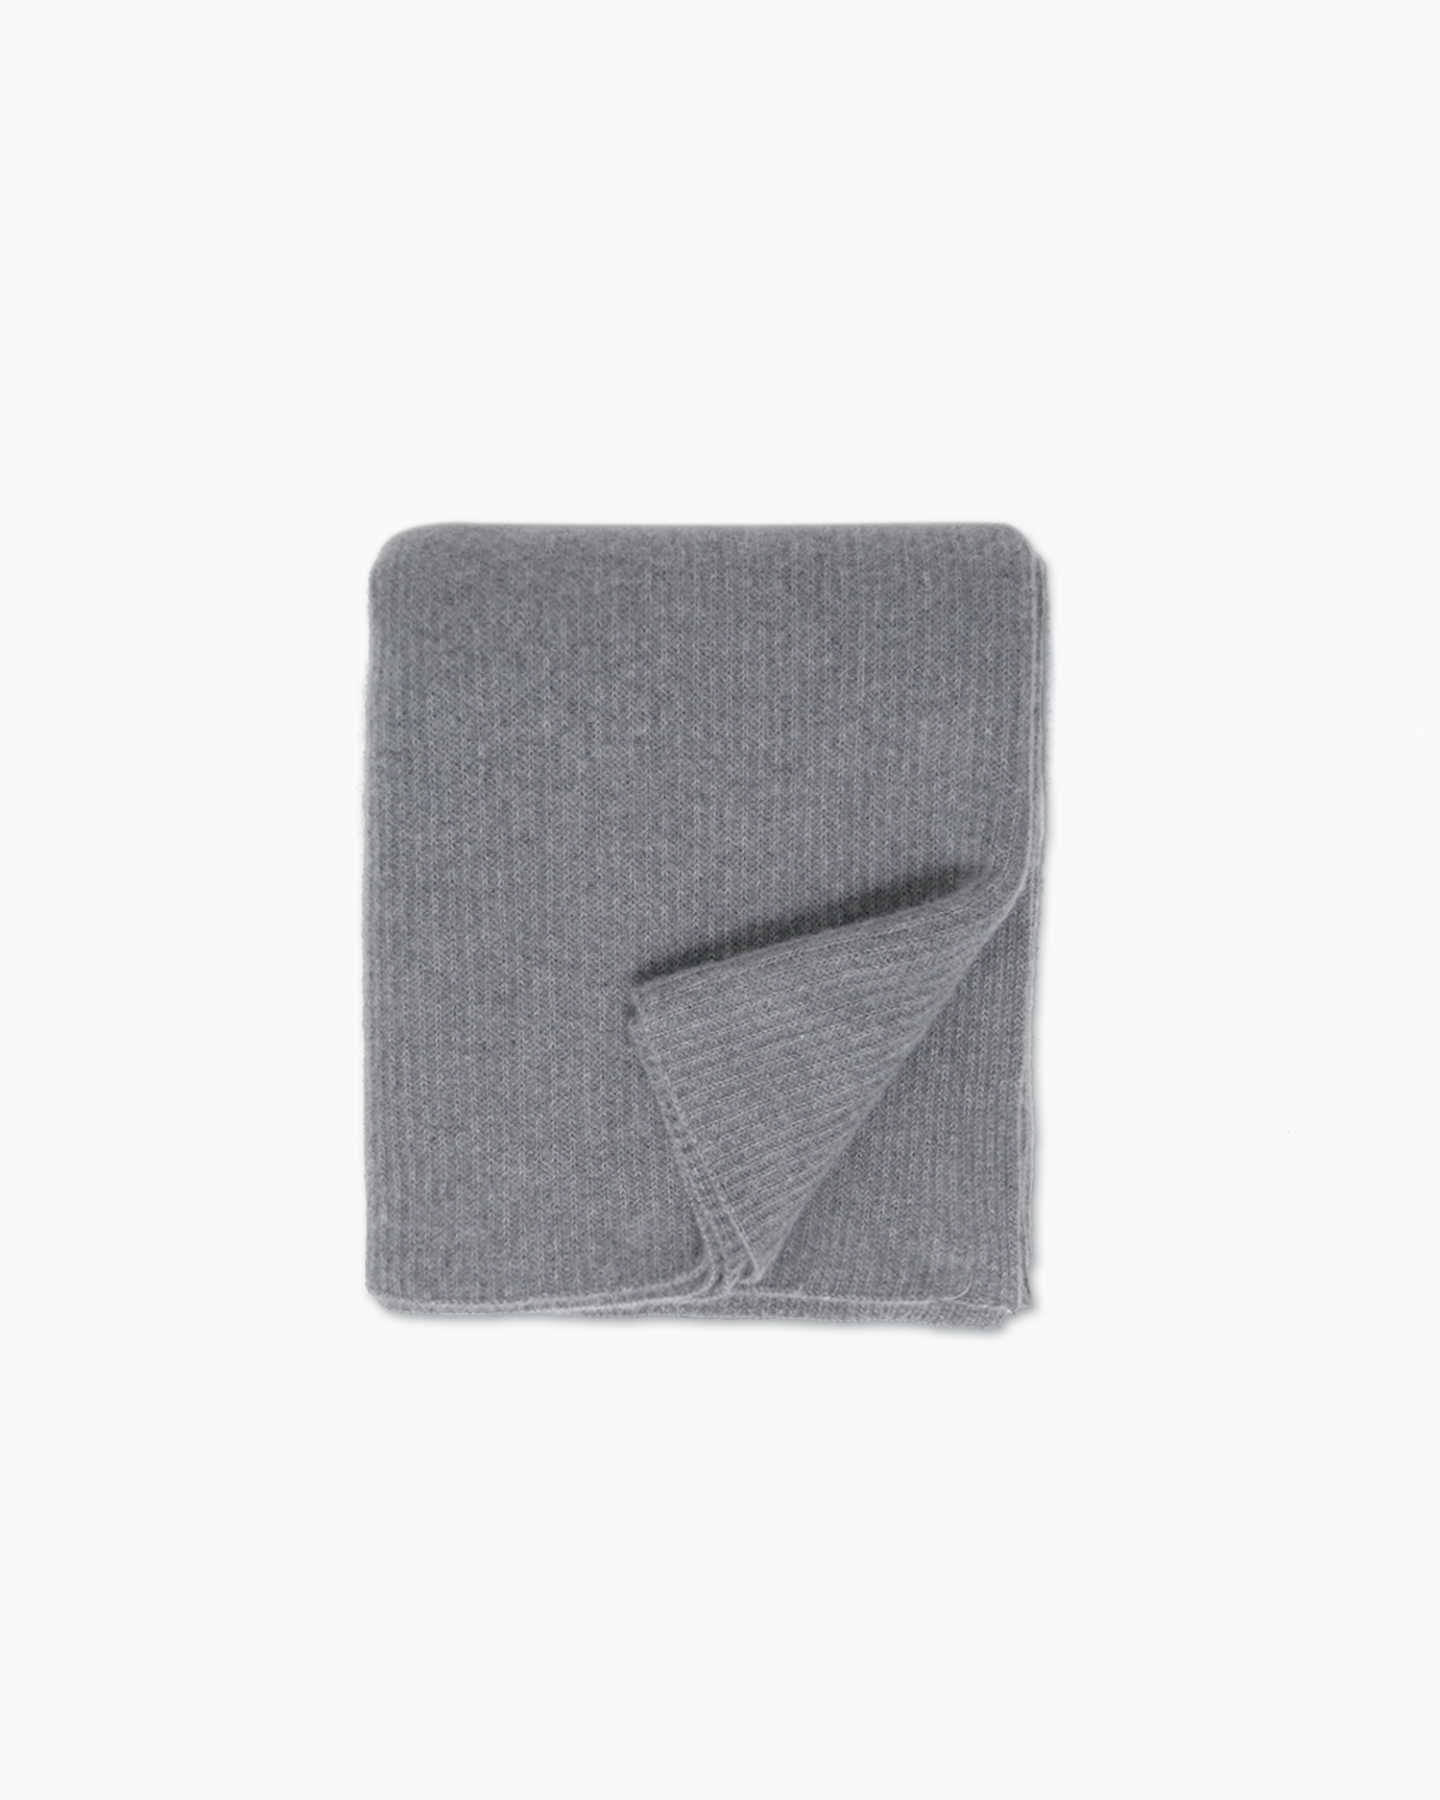 Ribbed Knit Cashmere Throw - Heather Grey - 0